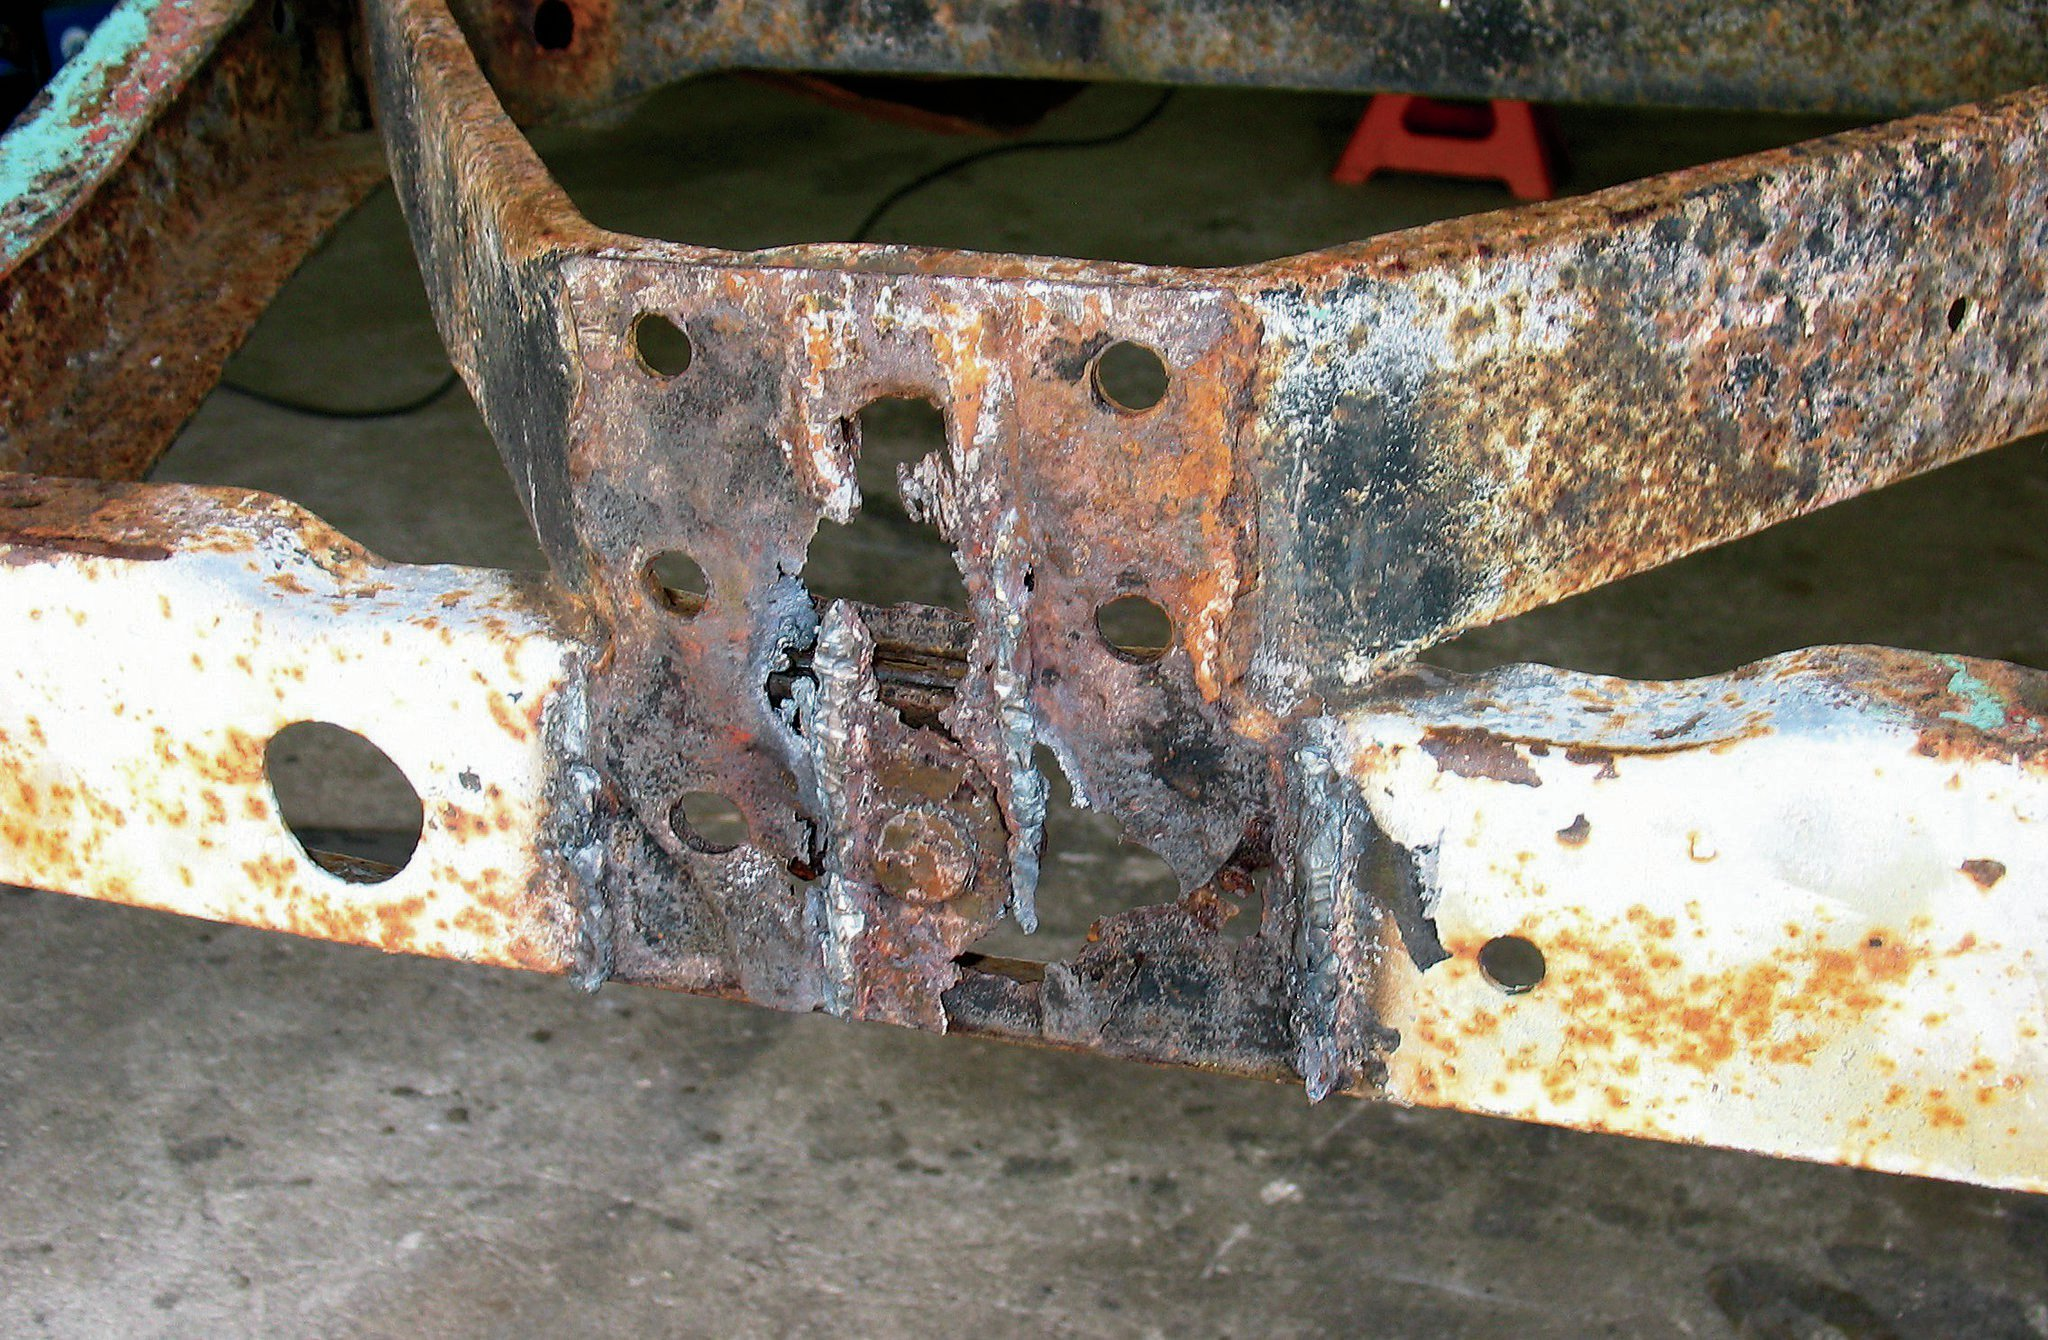 After removing the welded- and bolted-on tow hitch from the rear bumper area of our frame, we were left with this rusty mess. We used a 41⁄2-inch angle grinder to clean it up.